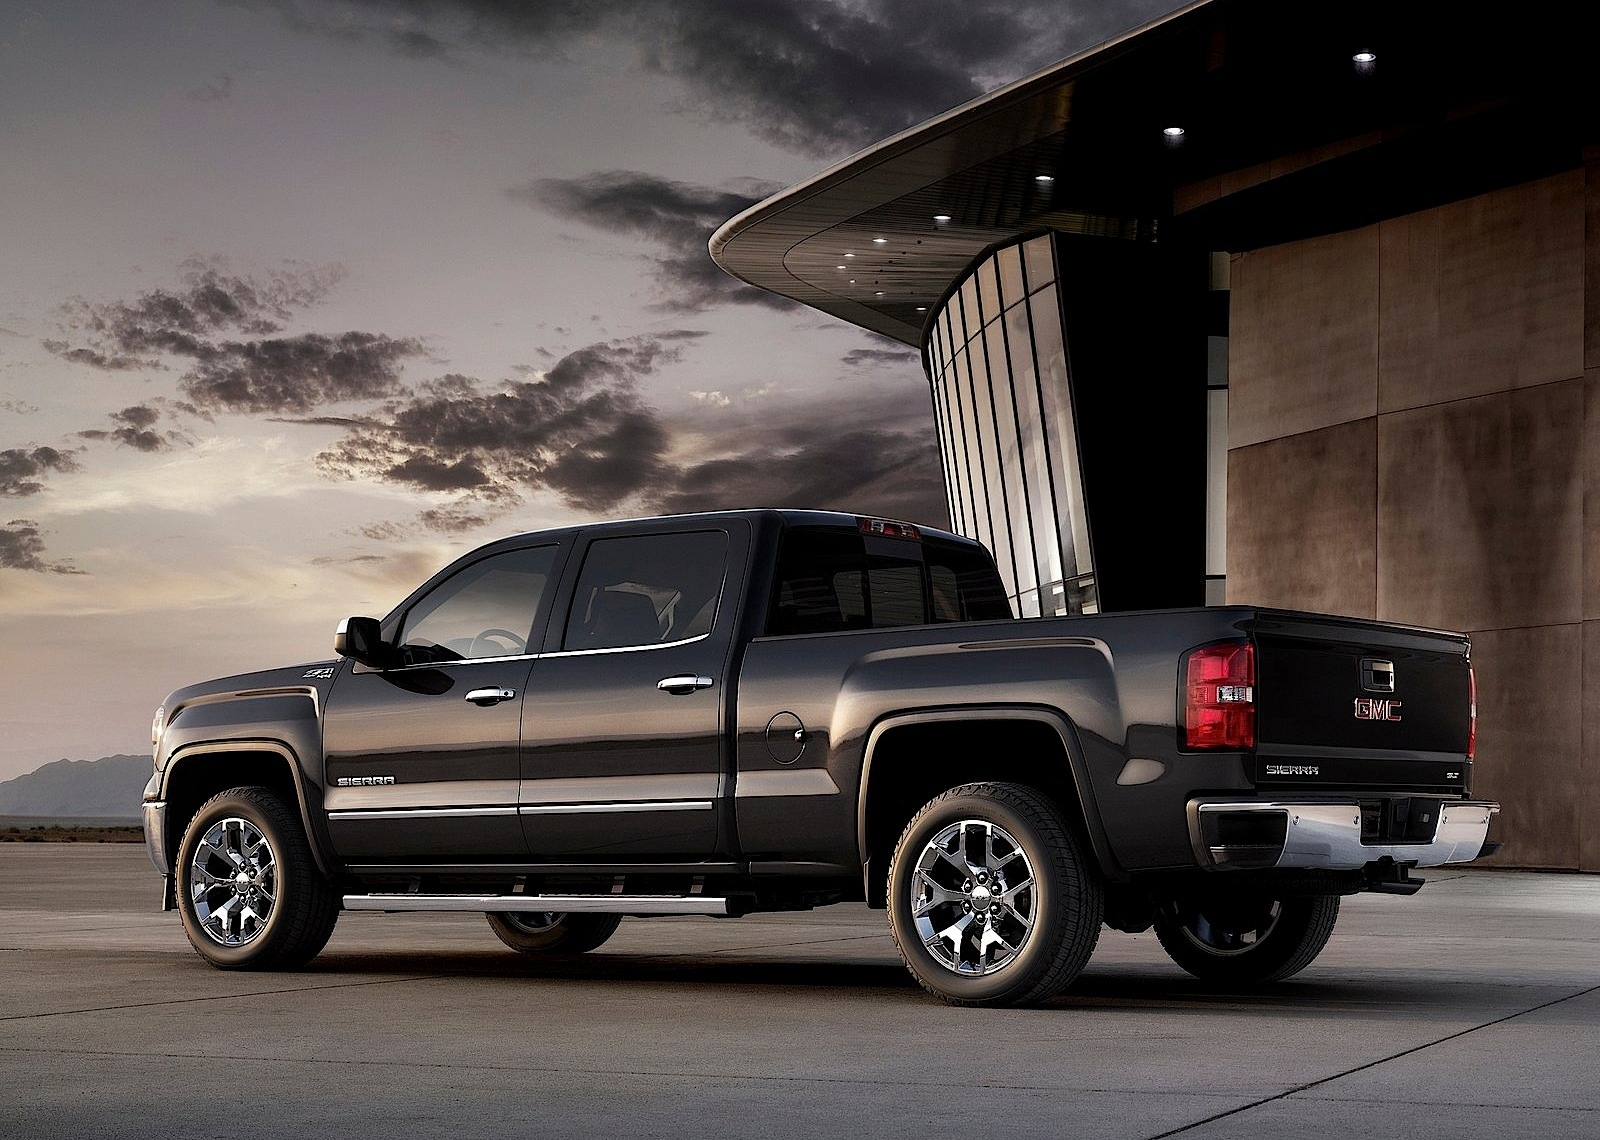 gmc sierra double cab specs 2013 2014 2015 2016 2017 2018 autoevolution. Black Bedroom Furniture Sets. Home Design Ideas